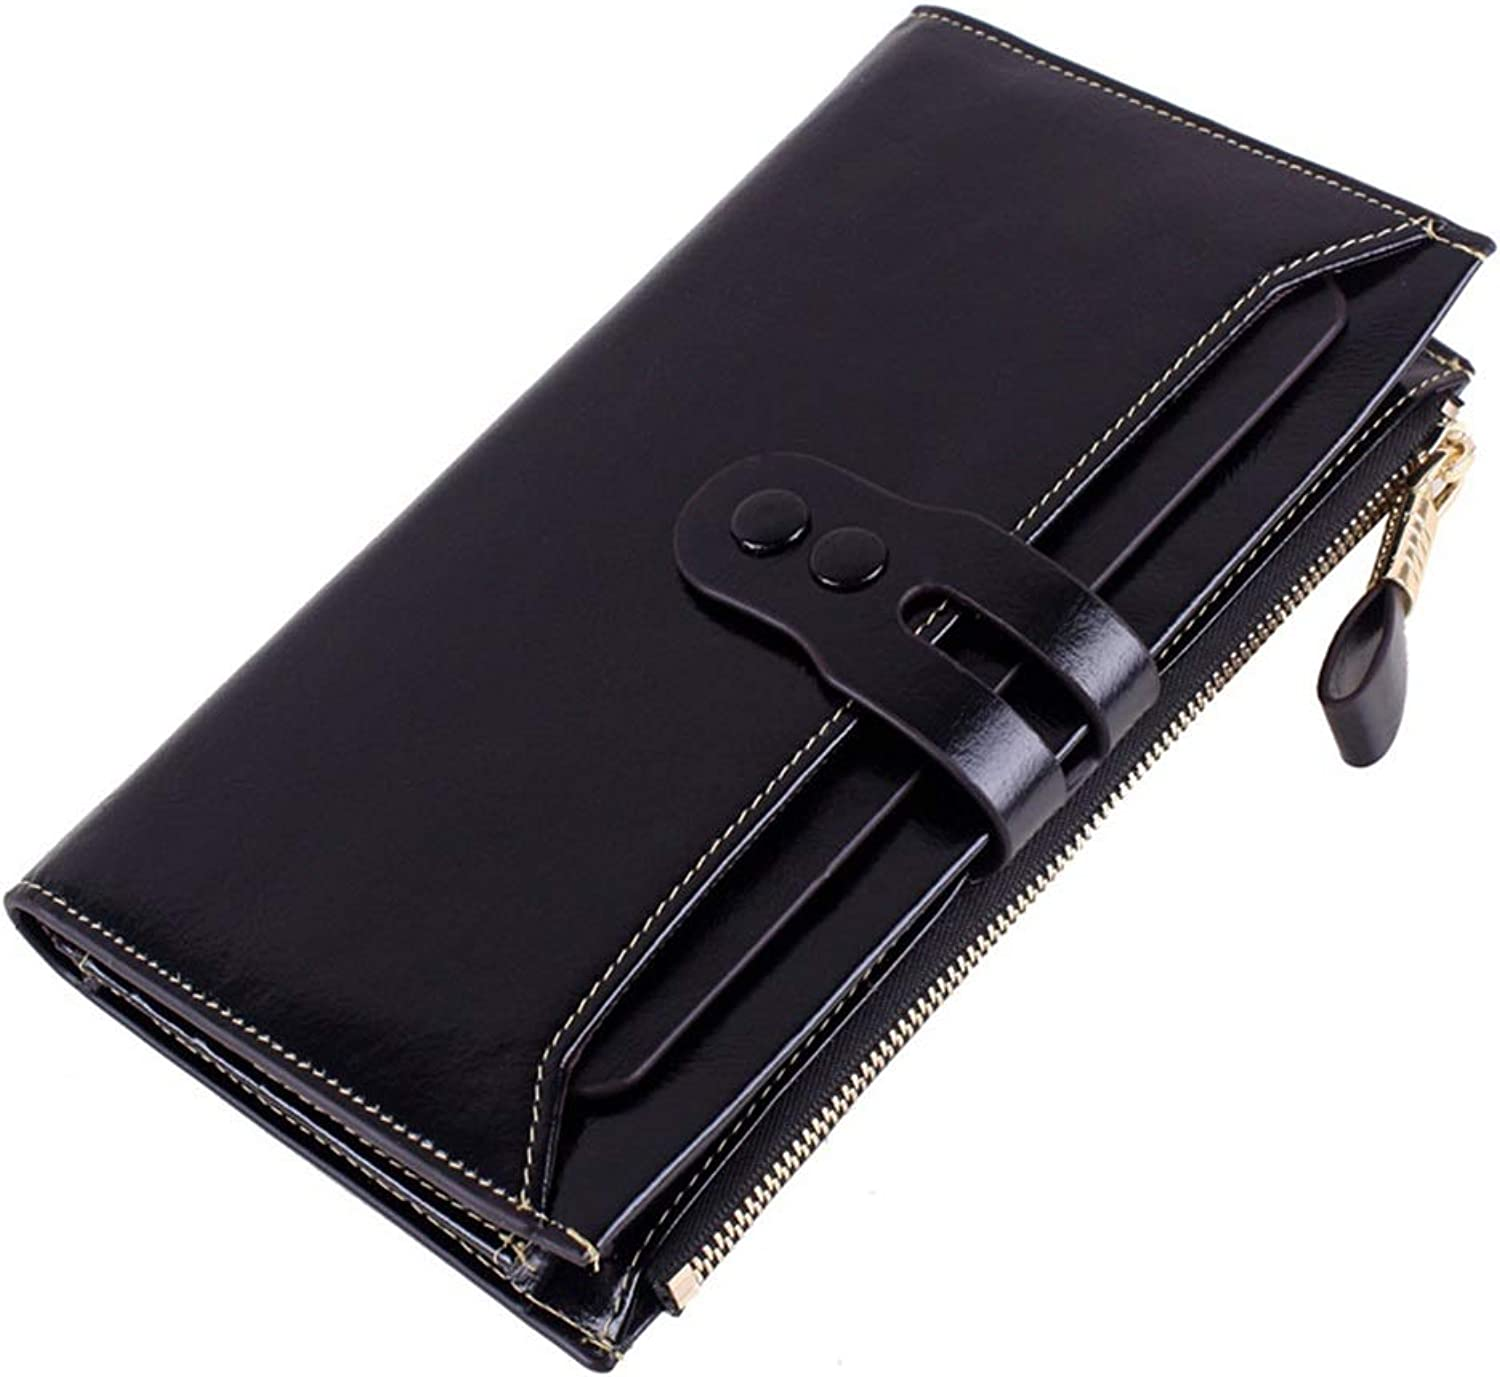 Sturdy Wallet Leather First Layer Leather Long Wallet Women's Clutch Large Capacity (color   Black)